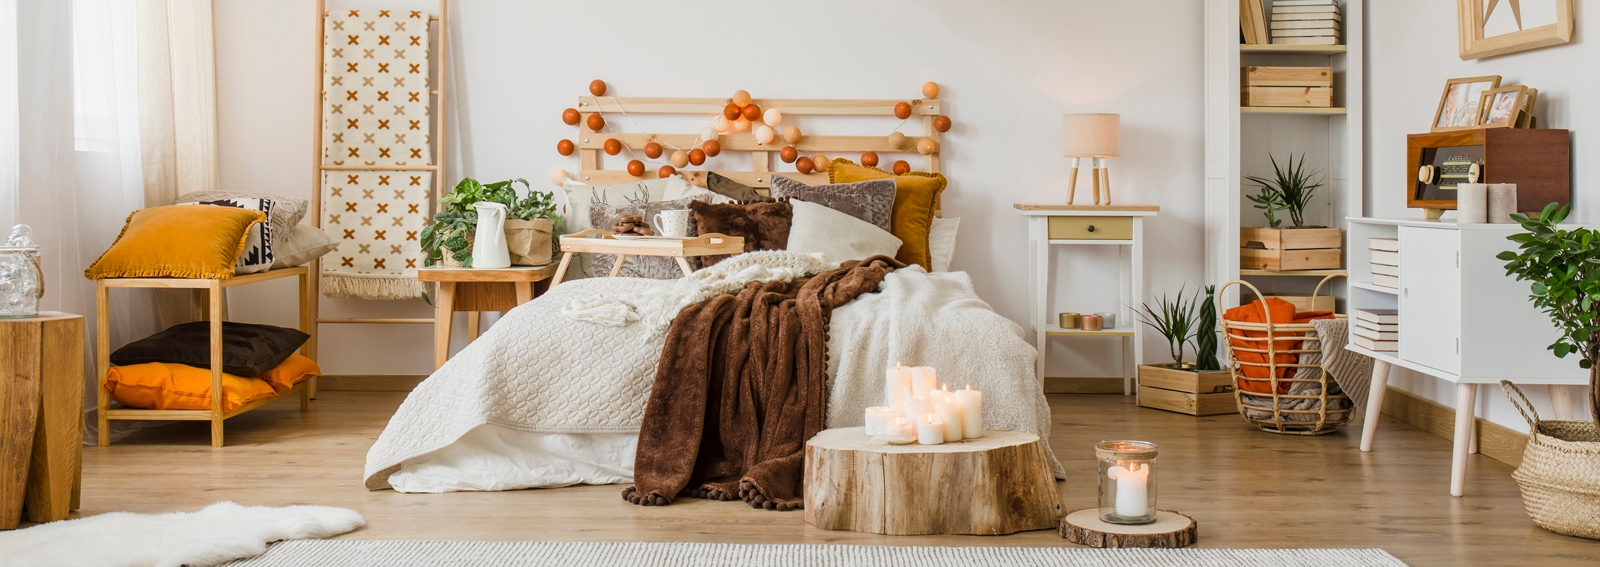 Spacious hygge bedroom interior